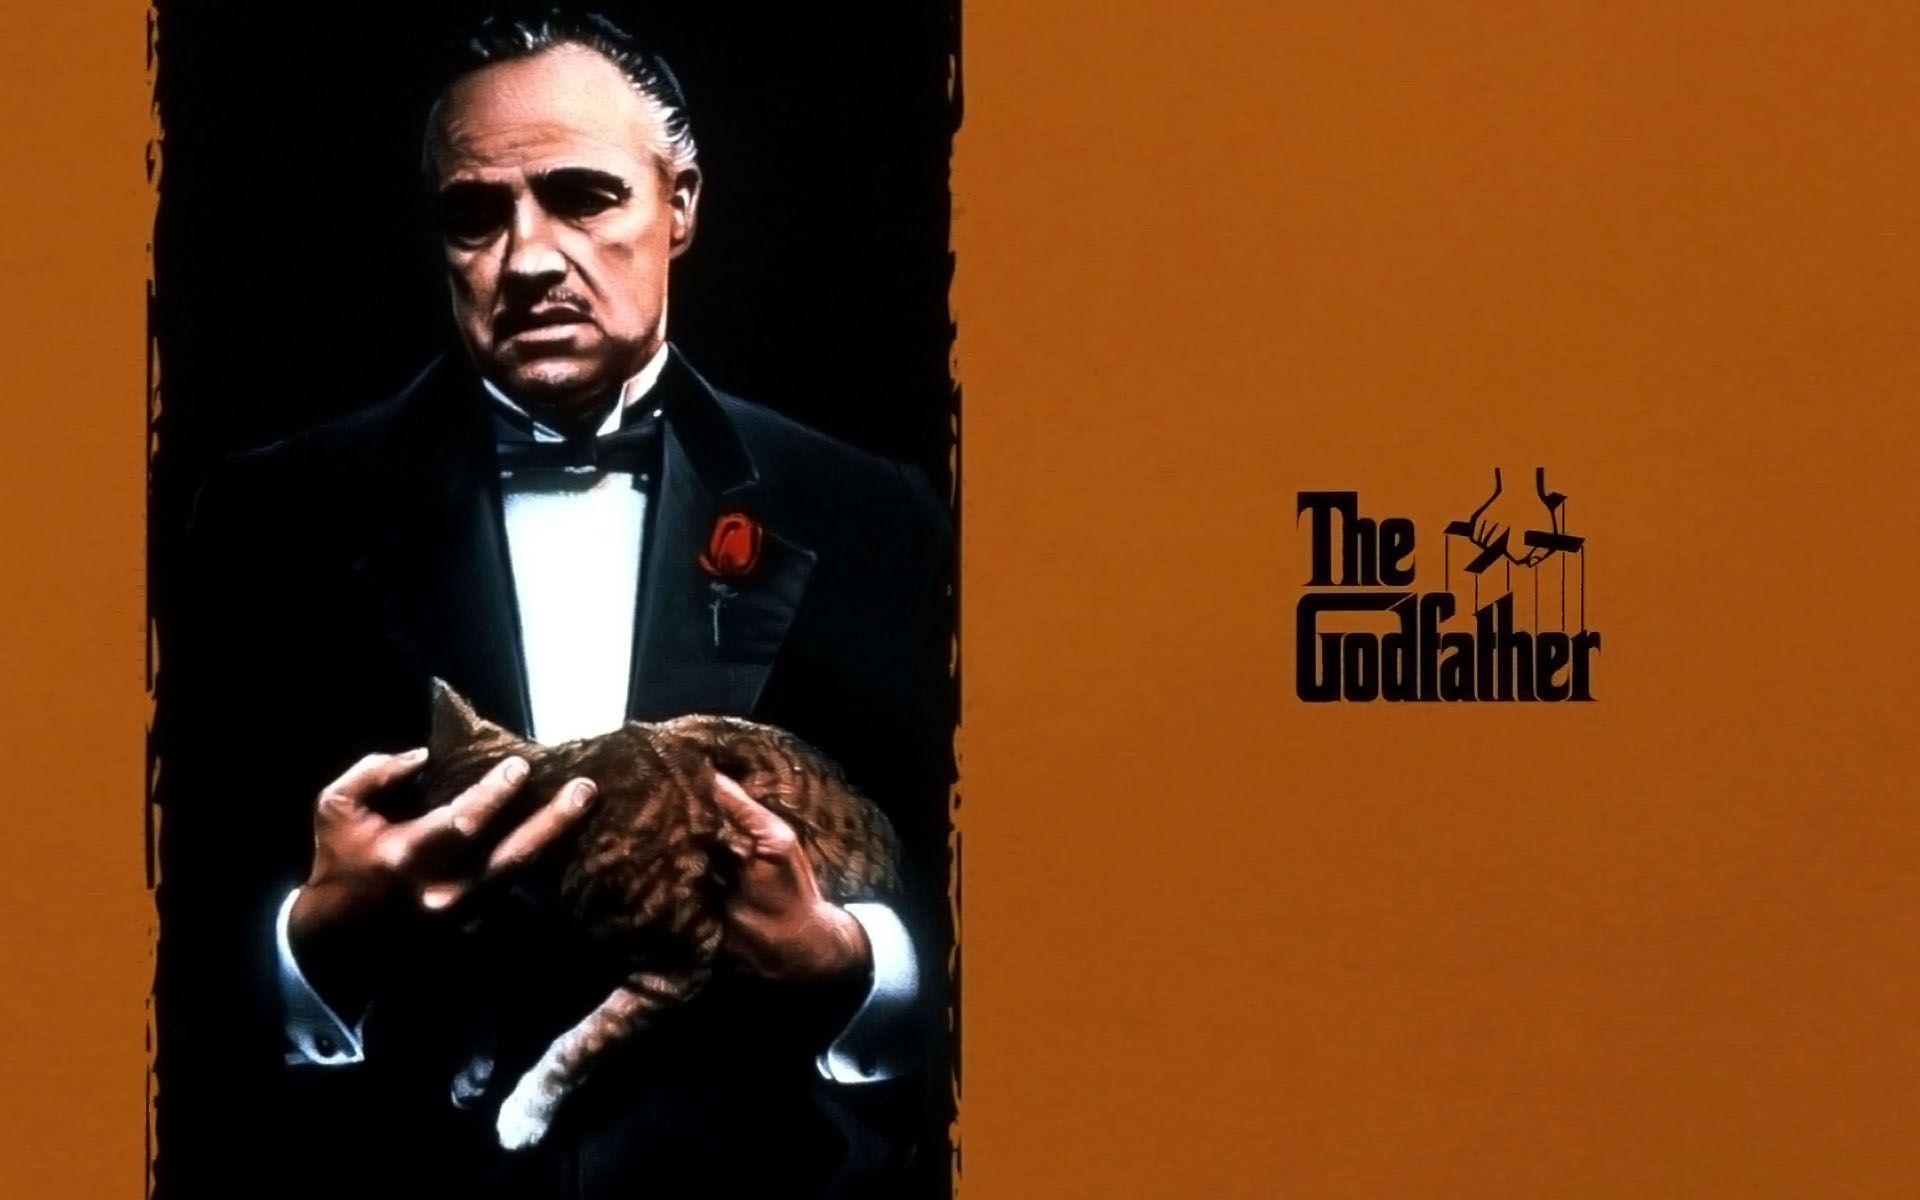 The Godfather quote wallpaper - 755088